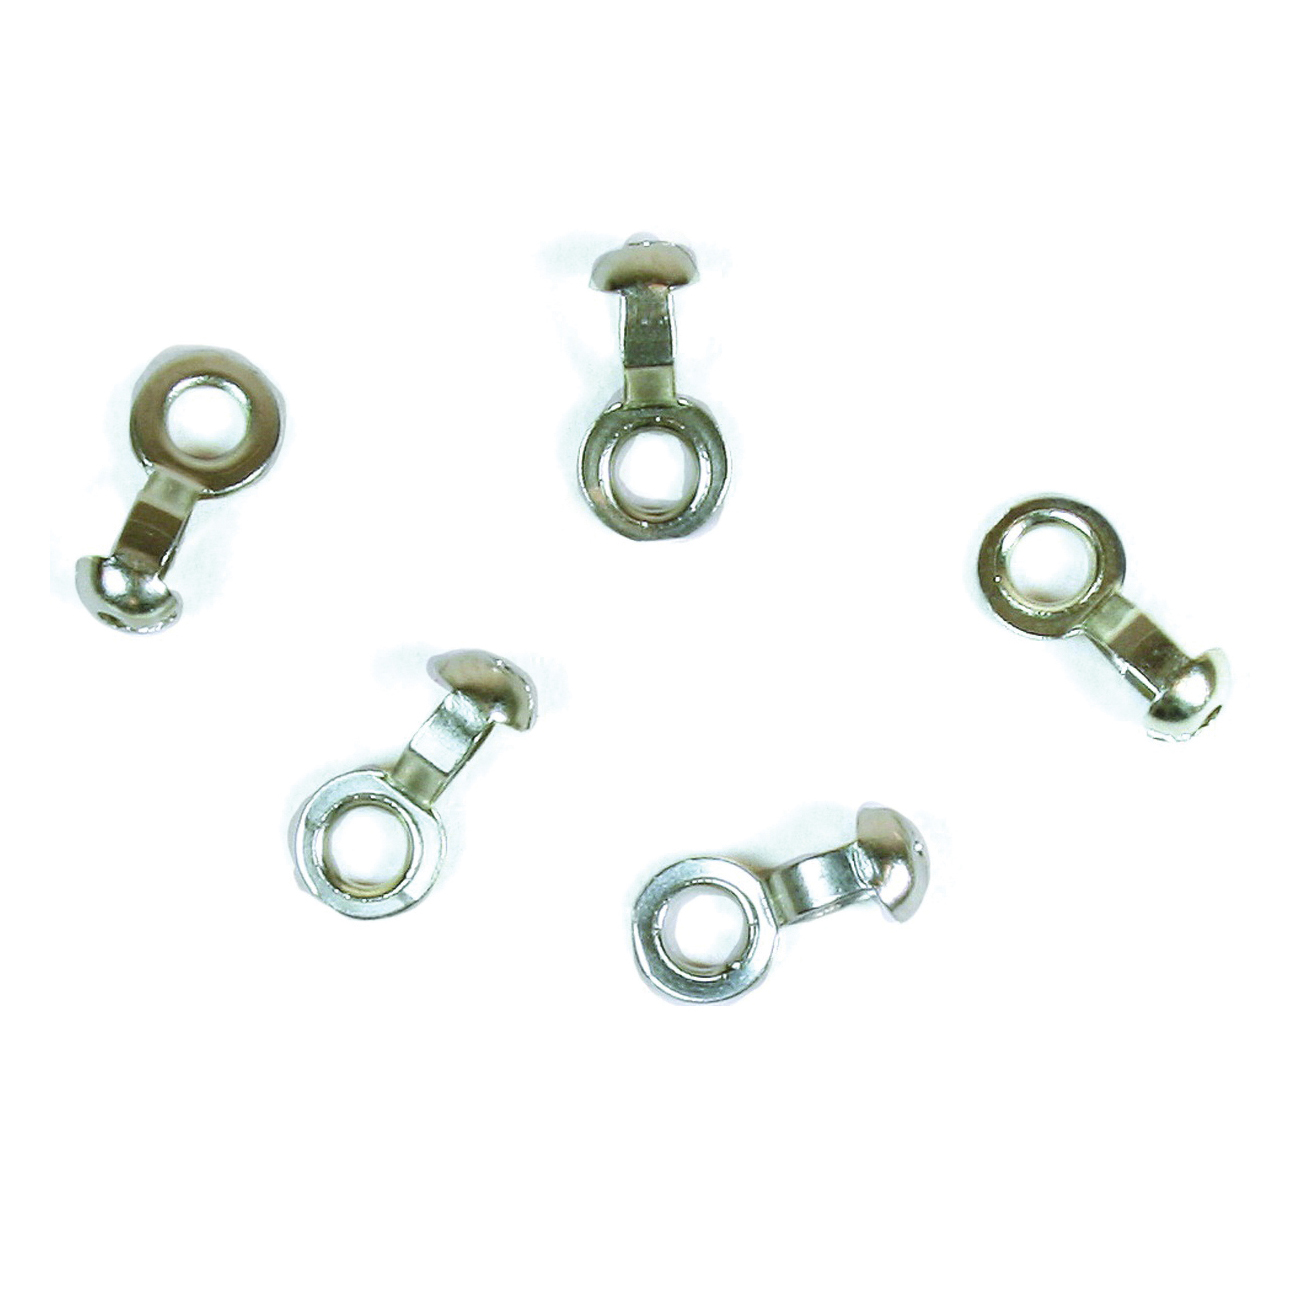 Picture of Jandorf 60357 Pull Chain Coupling, #6 Chain, Nickel